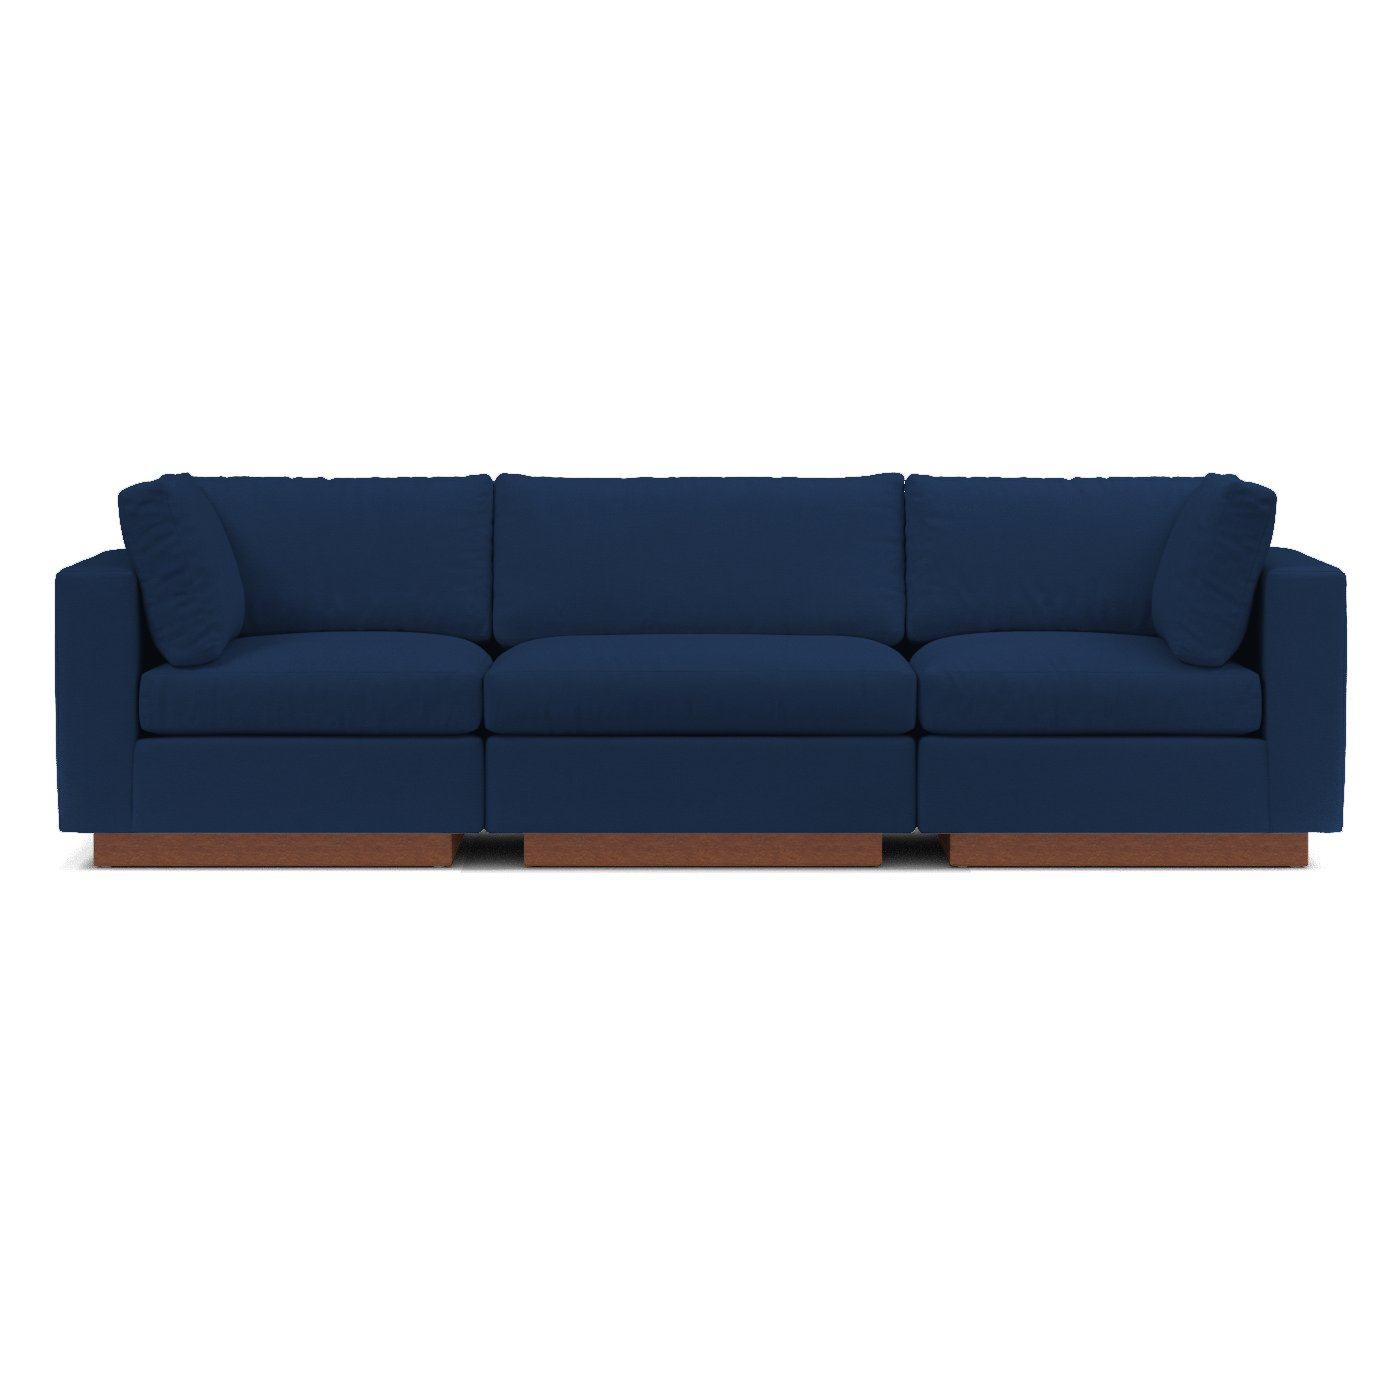 Delicieux Taylor Plush 3pc Modular Sofa. U003c Swipe To Scroll U003e